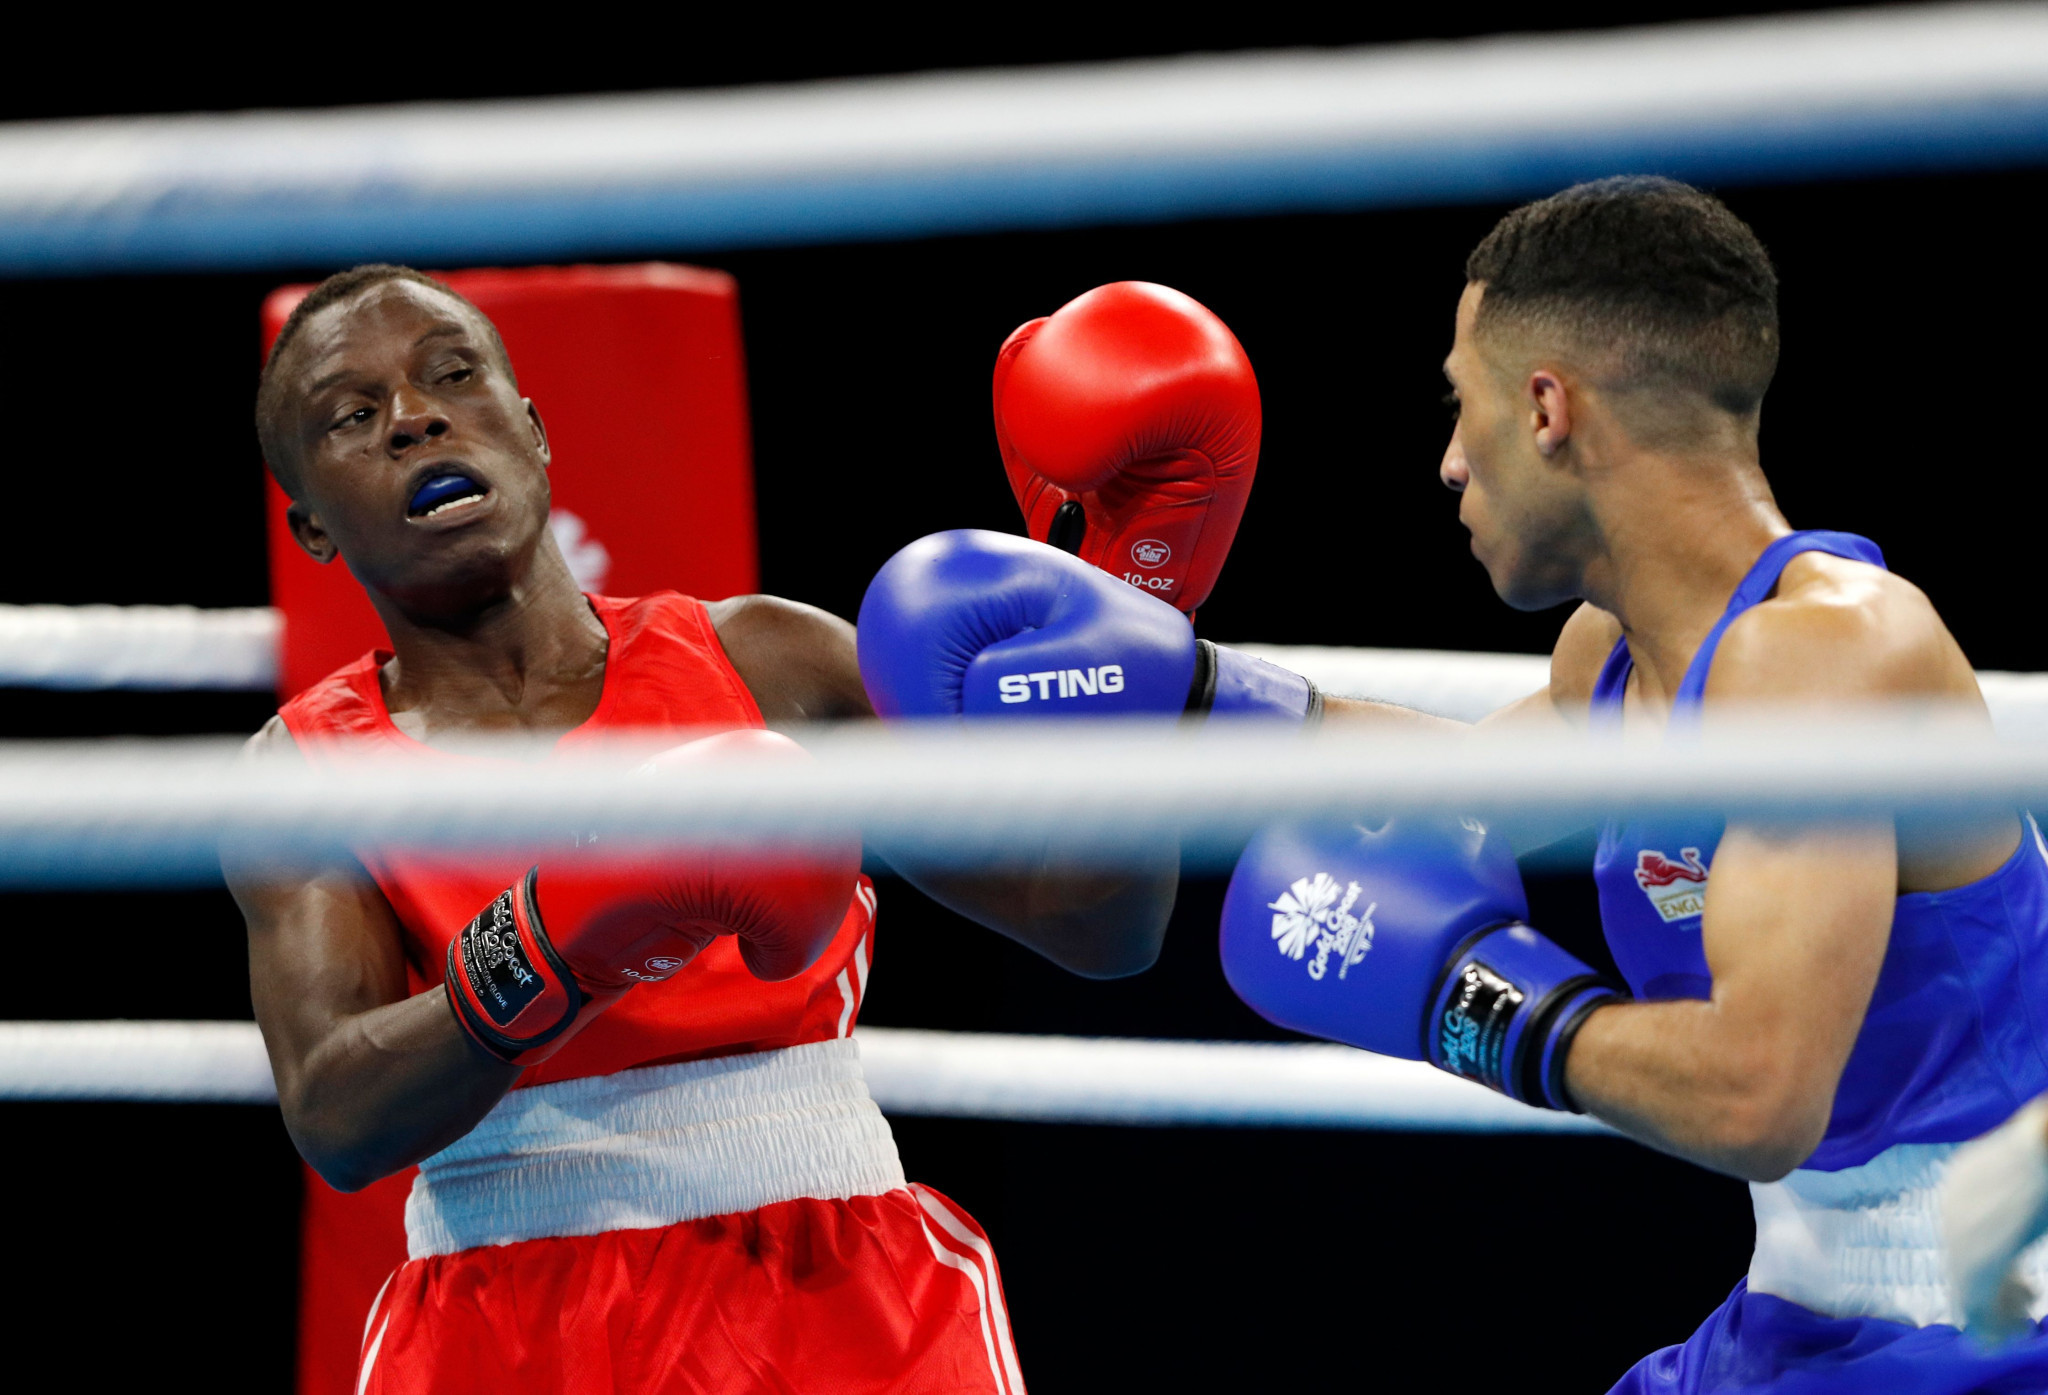 Boxer Simplice Fotsala, in red, is among the Cameroon athletes who fled after Gold Coast 2018 ©Getty Images